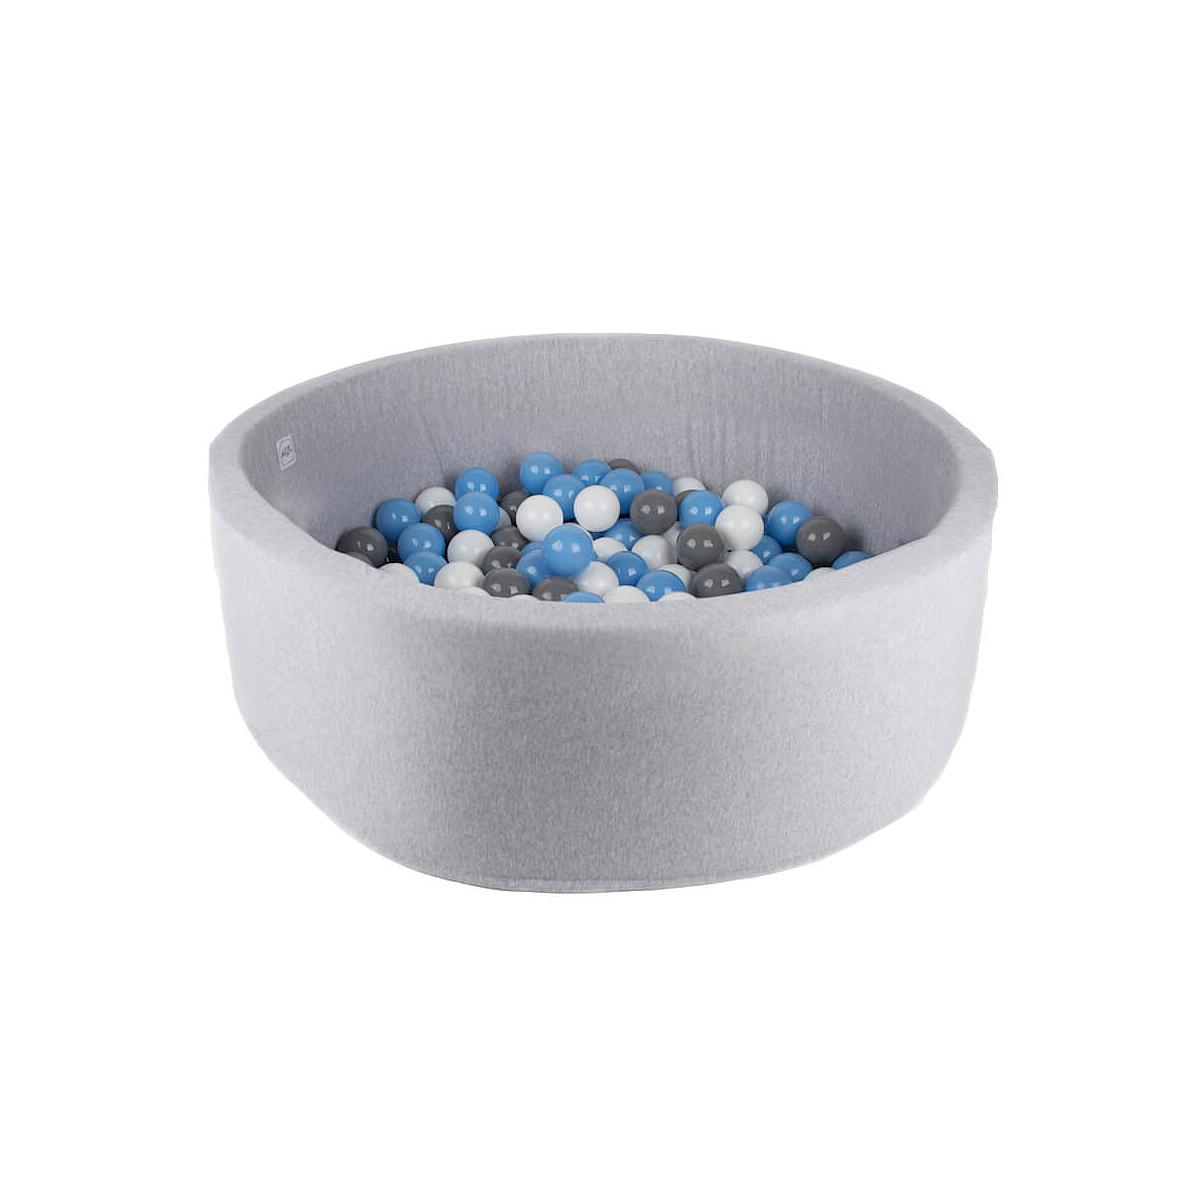 Piscine 200 boules LIGHT GREY Minibe baby blue-blanc-gris